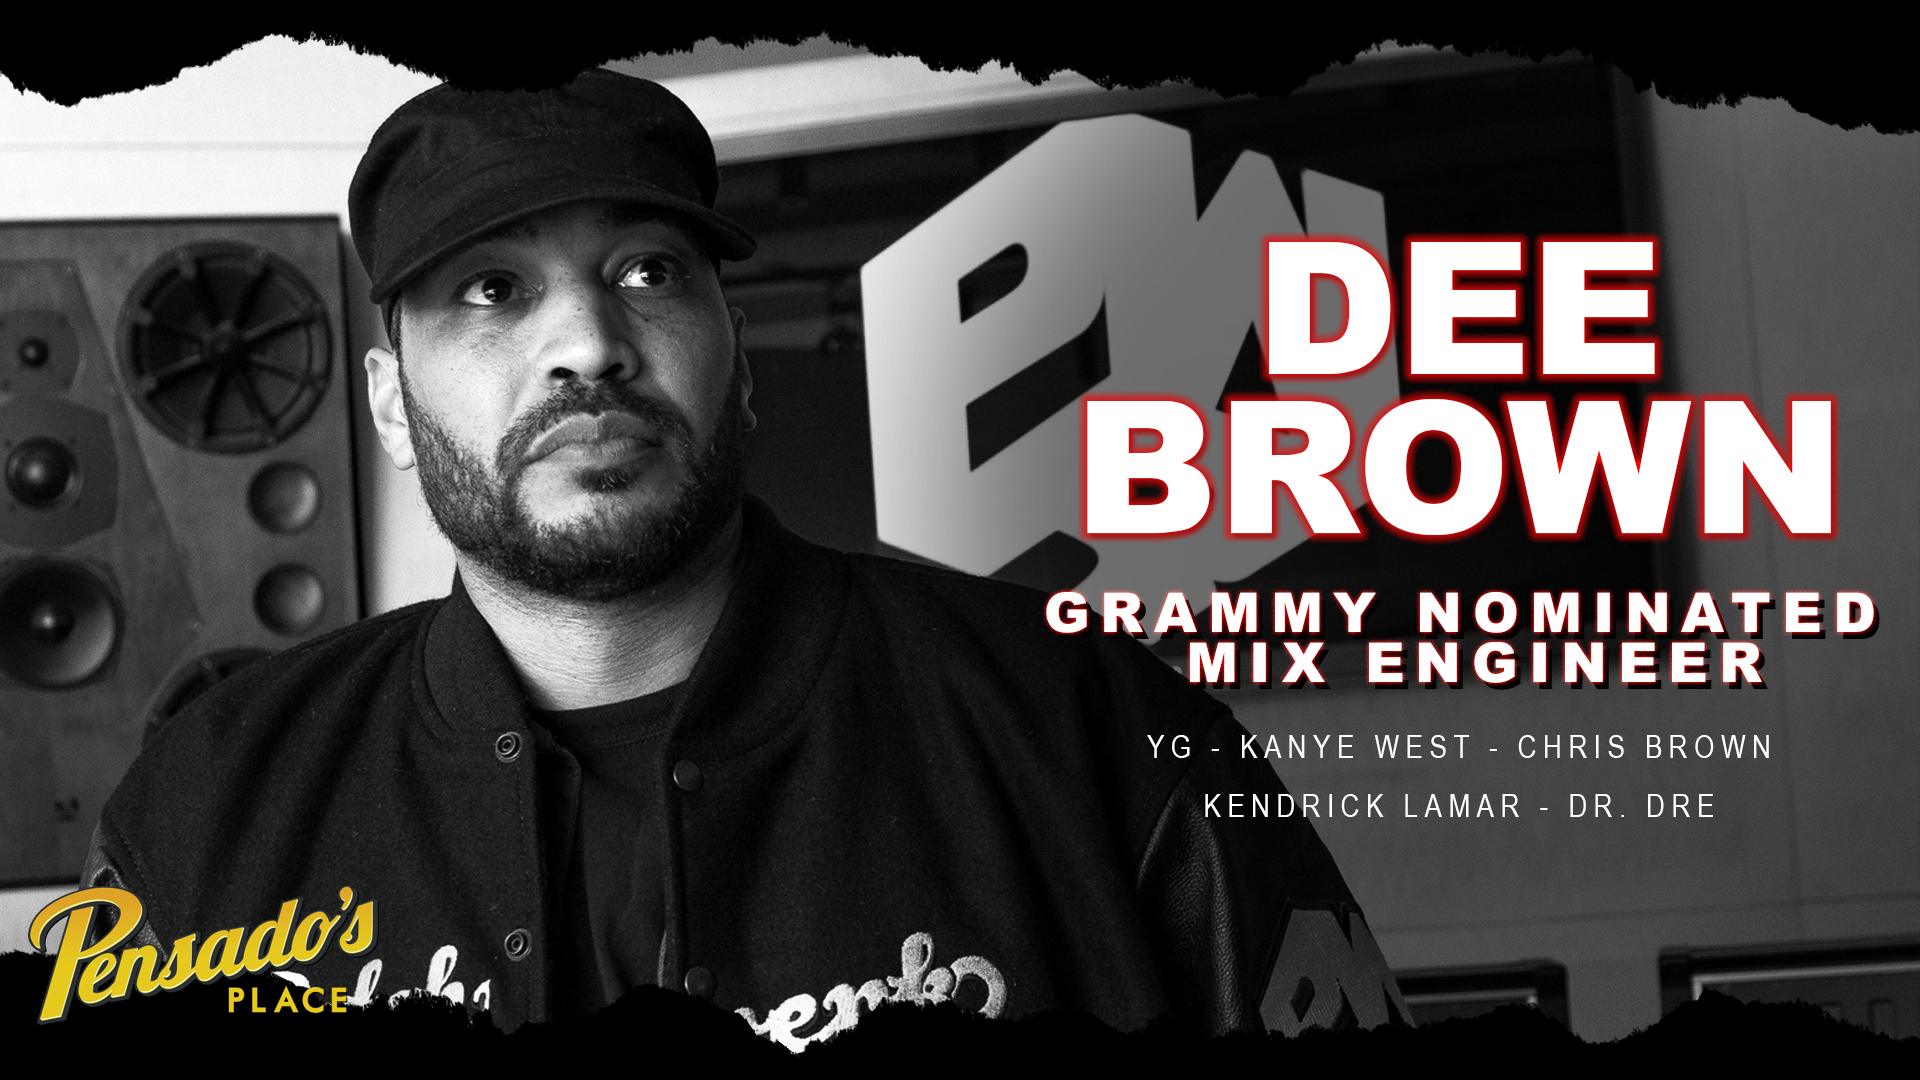 Grammy Nominated Mix Engineer, Dee Brown